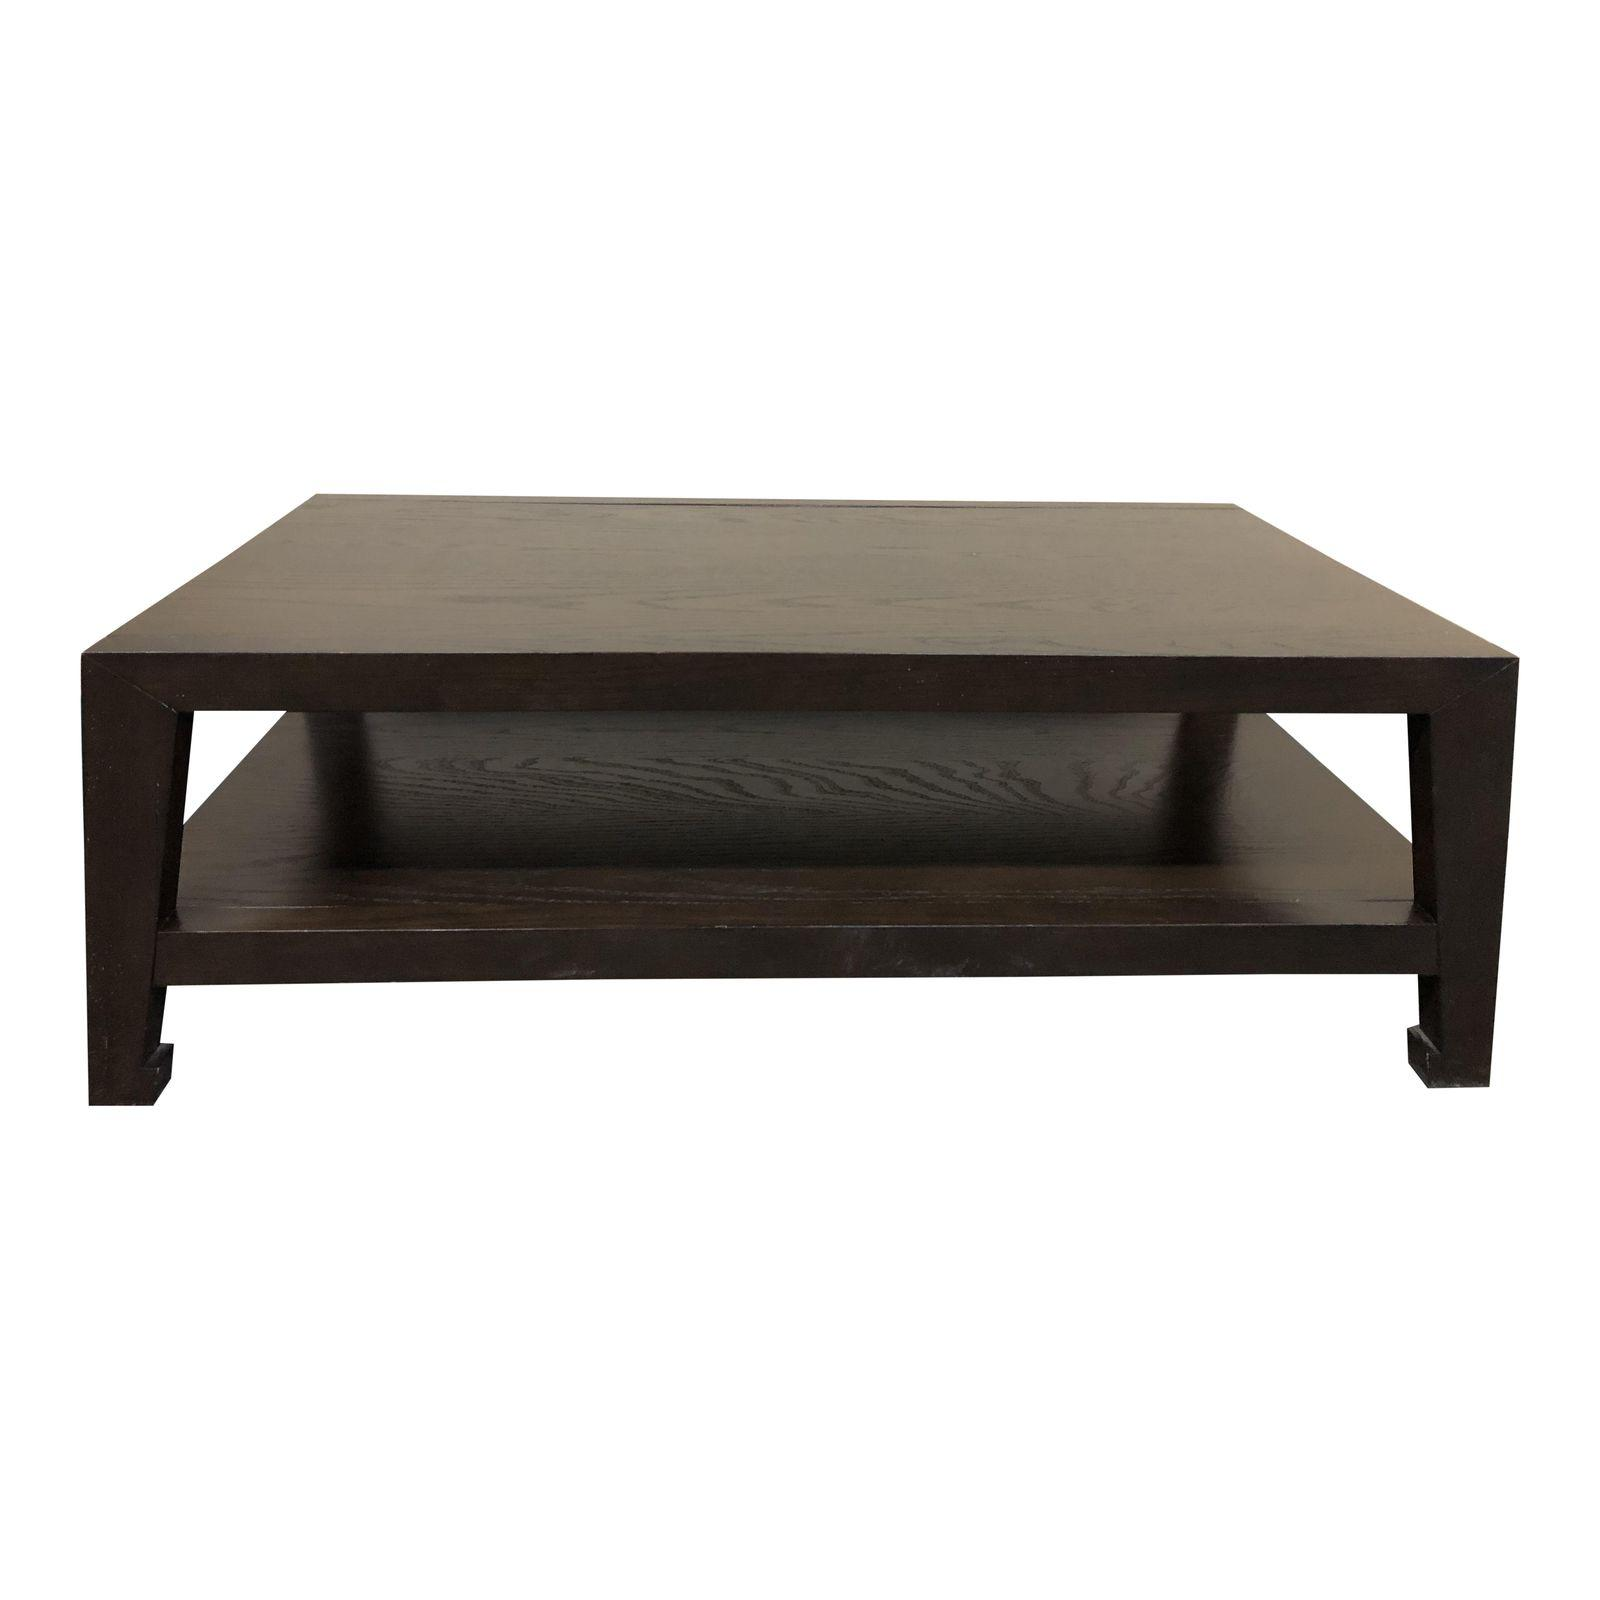 West elm zen wood coffee table design plus gallery for West elm coffee table sale